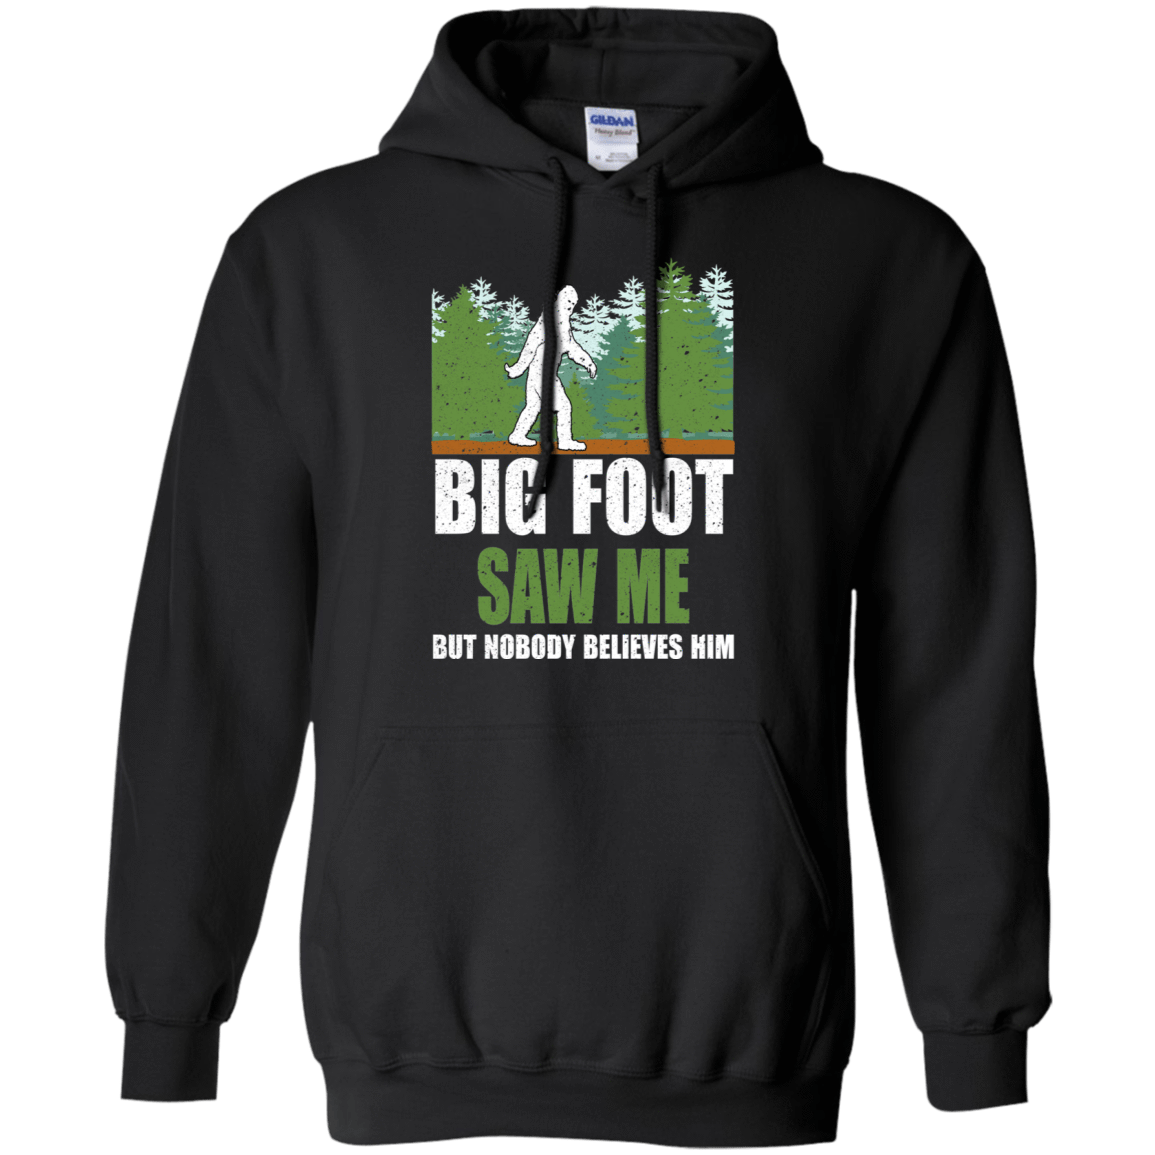 Bigfoot Saw Me But Nobody Believes T-Shirts, Hoodies, Tank 541-4740-78917292-23087 - Tee Ript